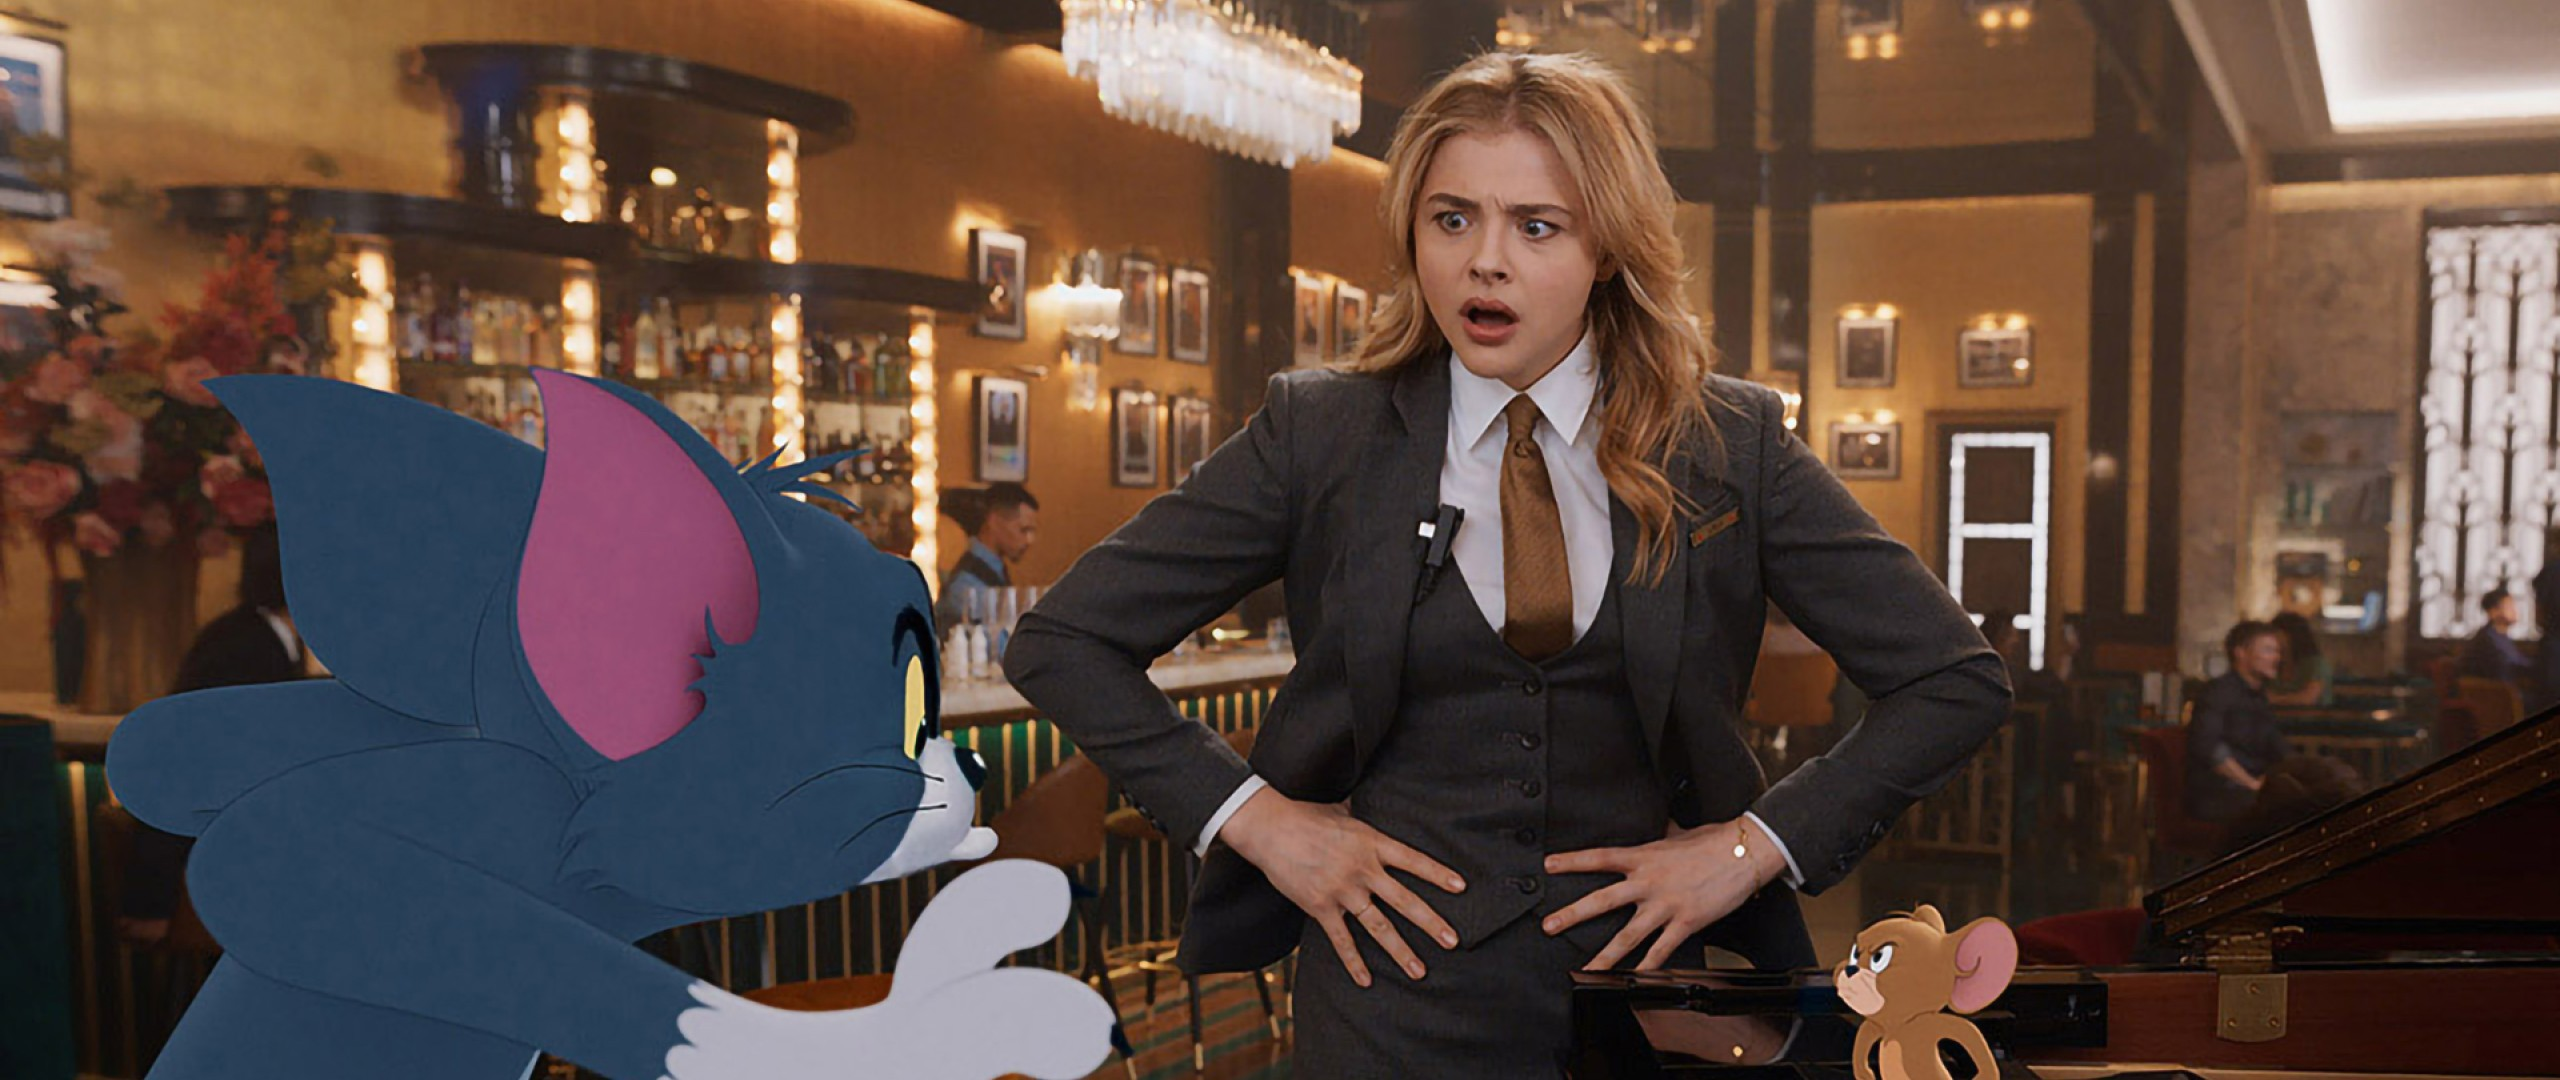 Chloe Grace Moretz em Tom & Jerry (Foto: Warner Bros)